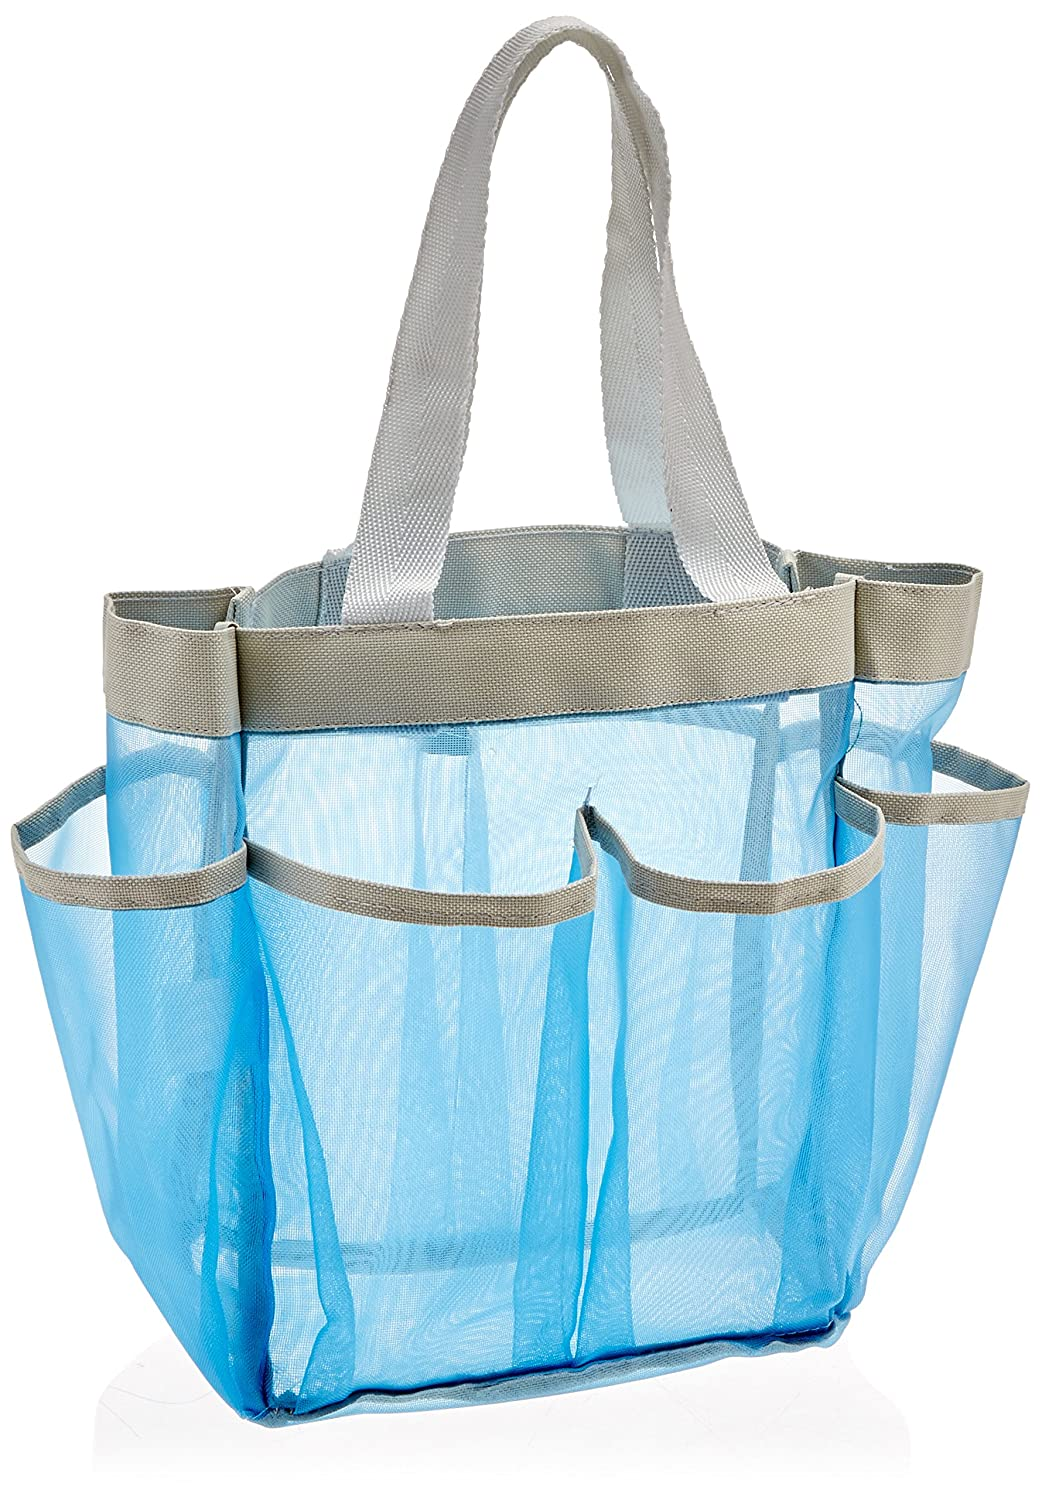 Amazon.com: White Mesh Shower Caddy Tote - Portable, Quick Dry ...